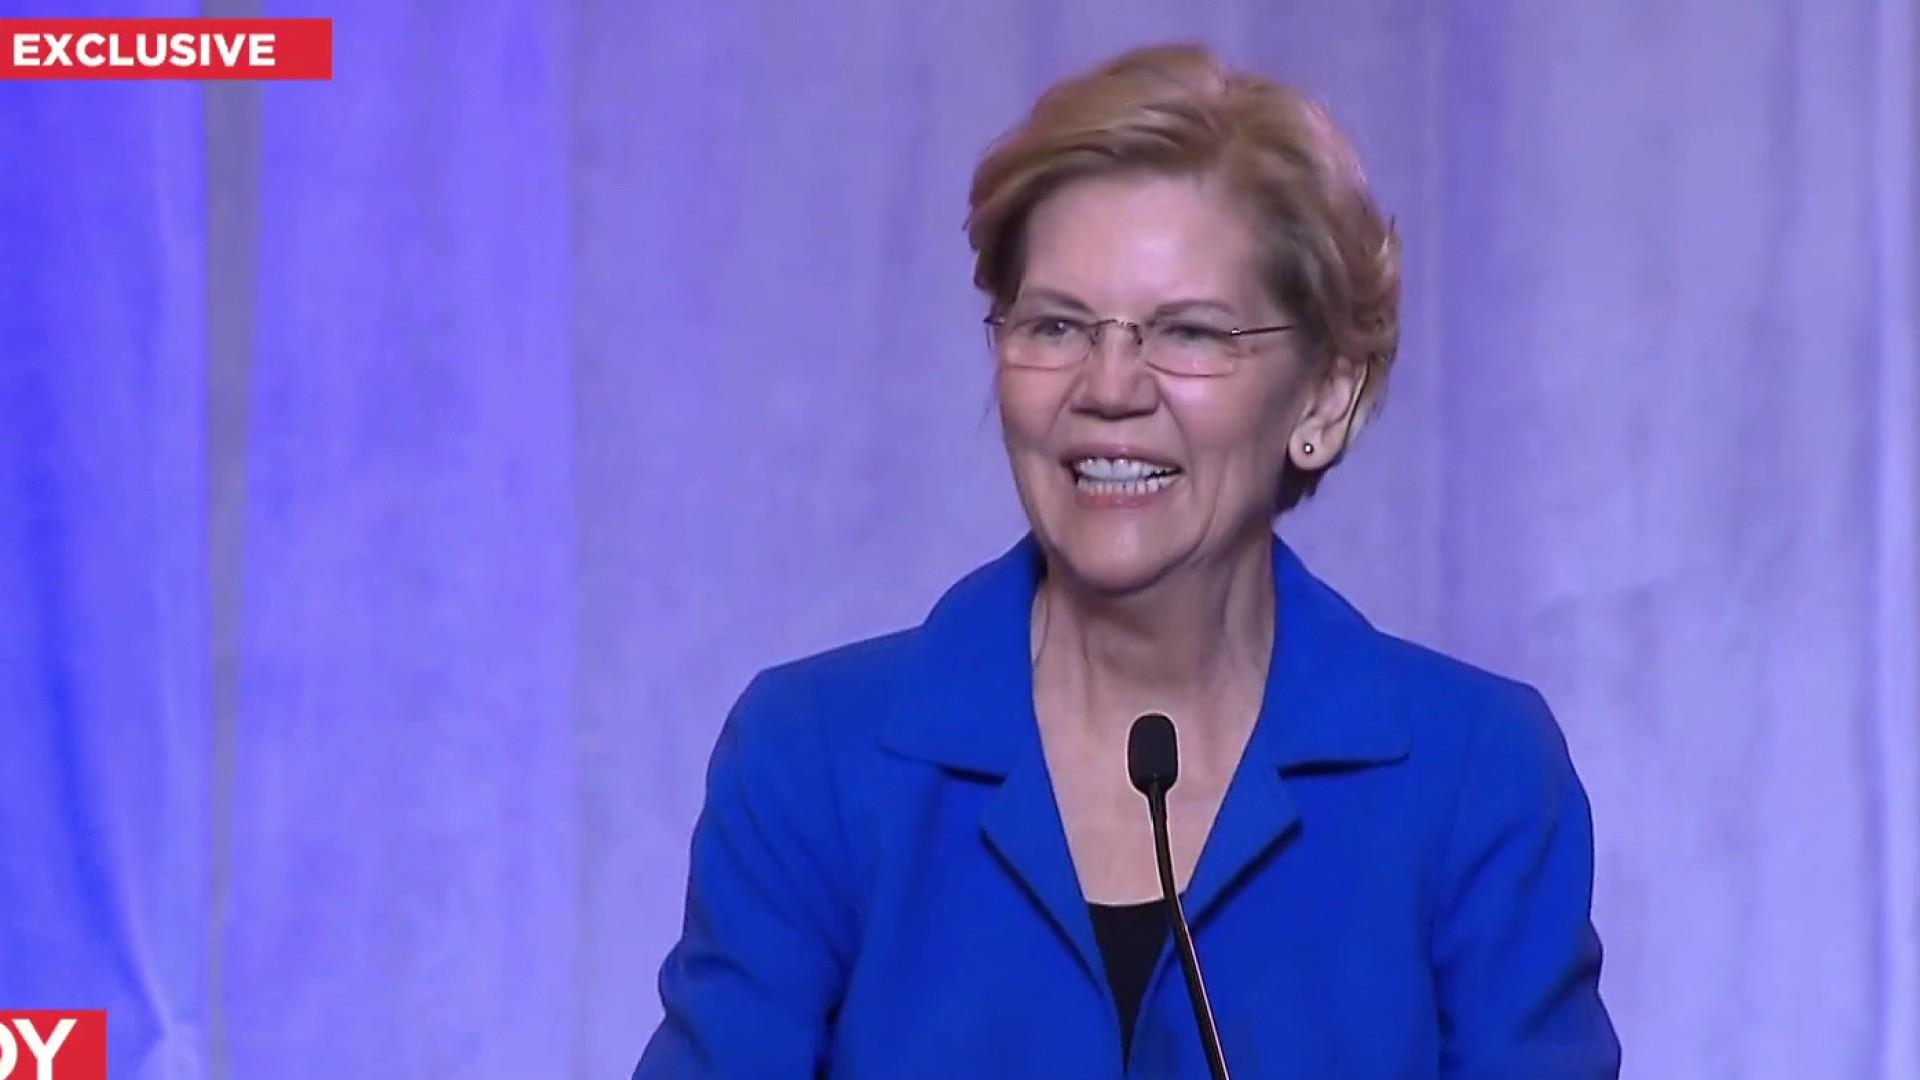 Sen. Warren: It is time for structural change in America